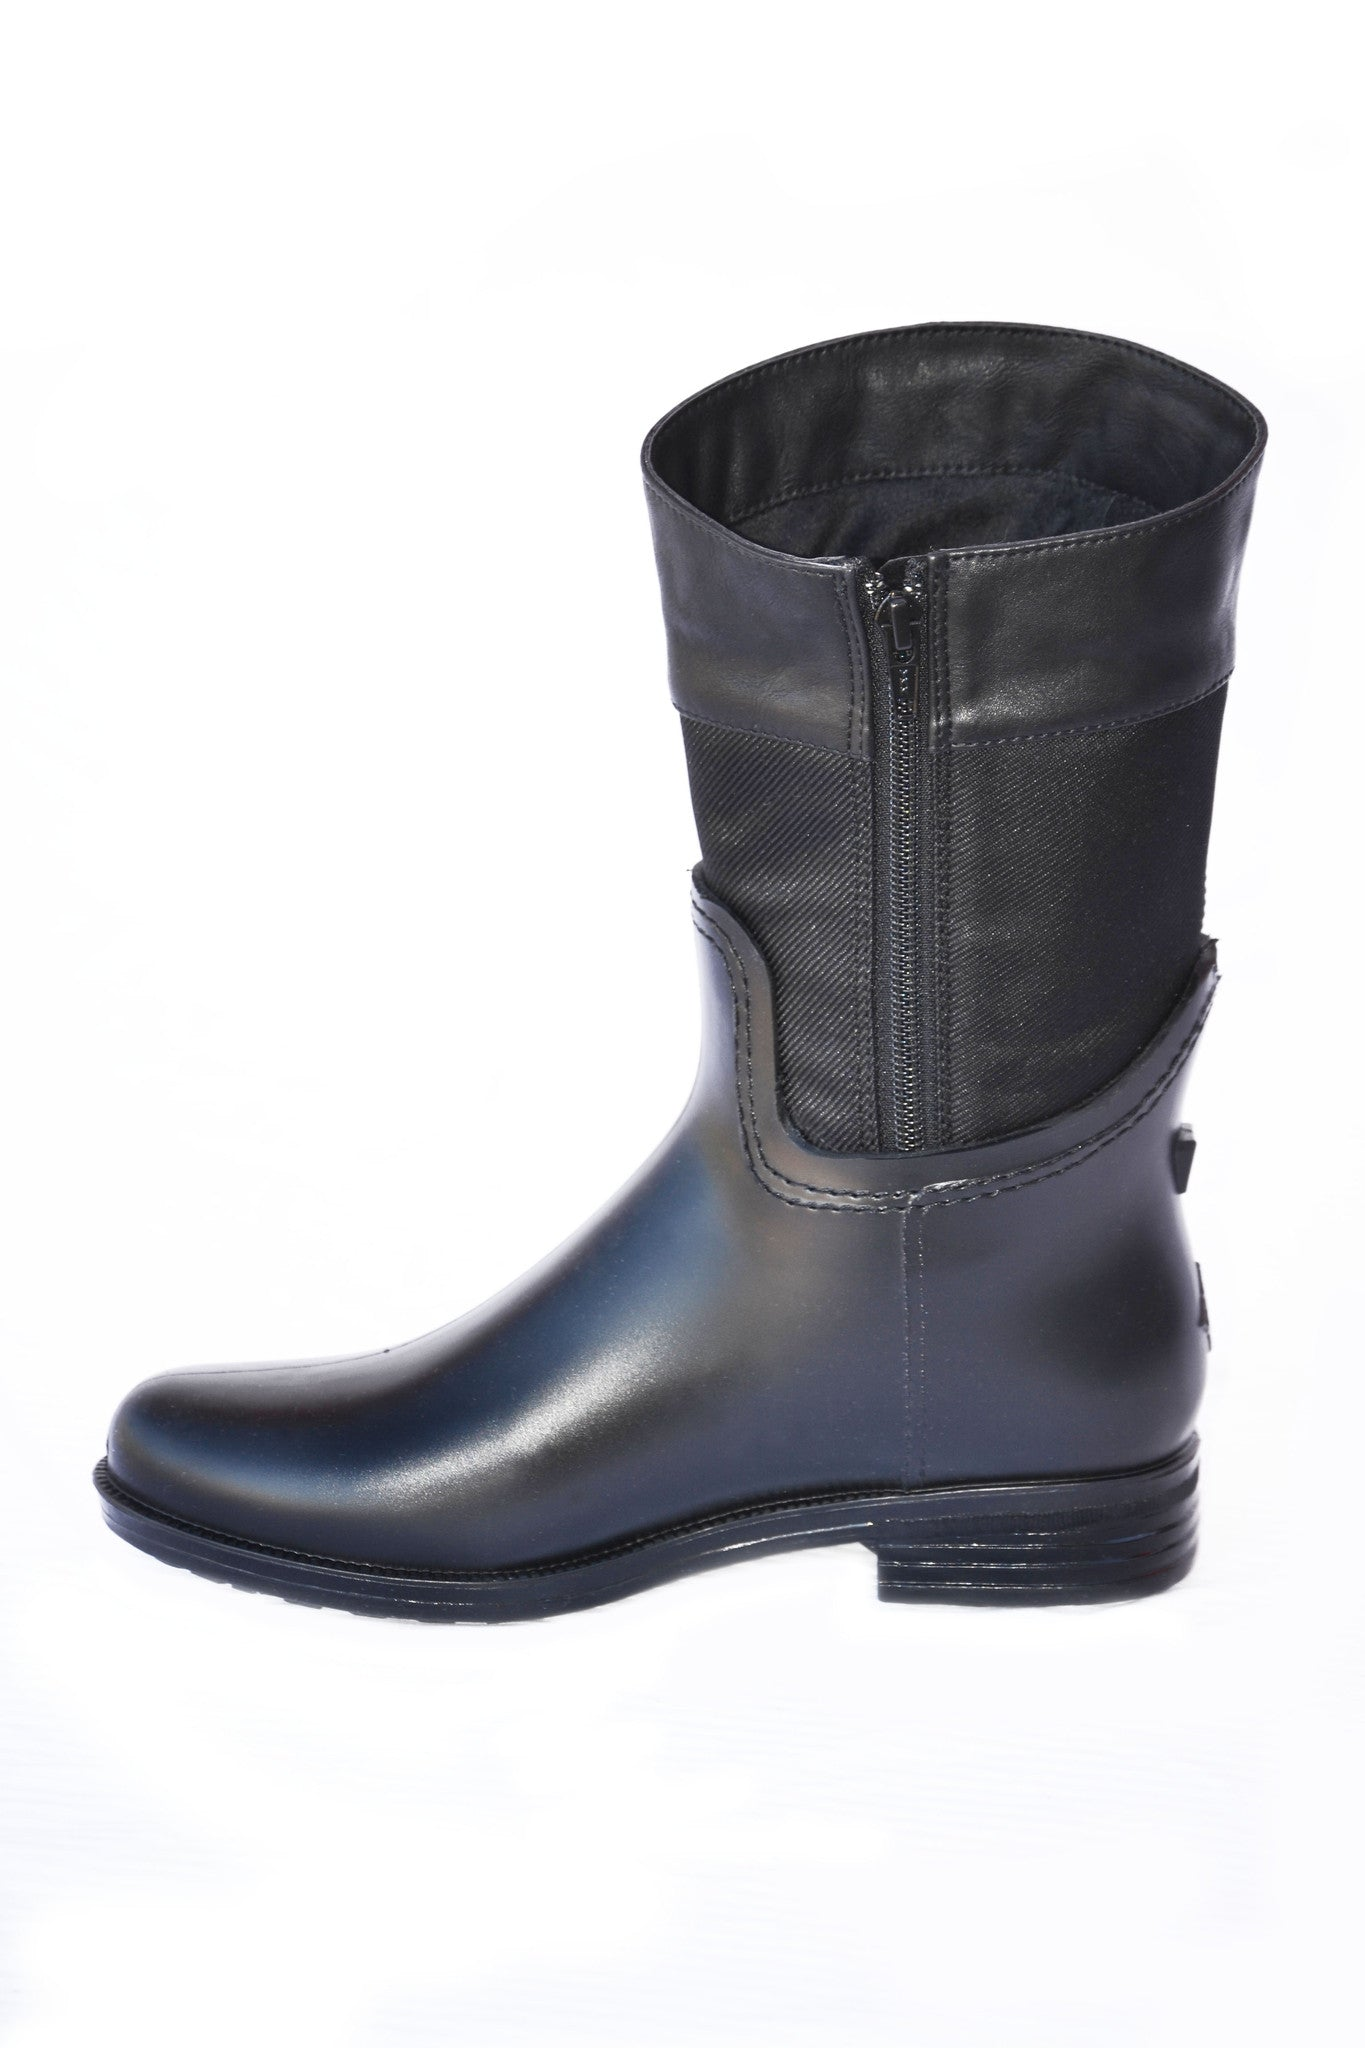 Women's fashion weatherproof dav rainboot Coventry Nylon Mid Black